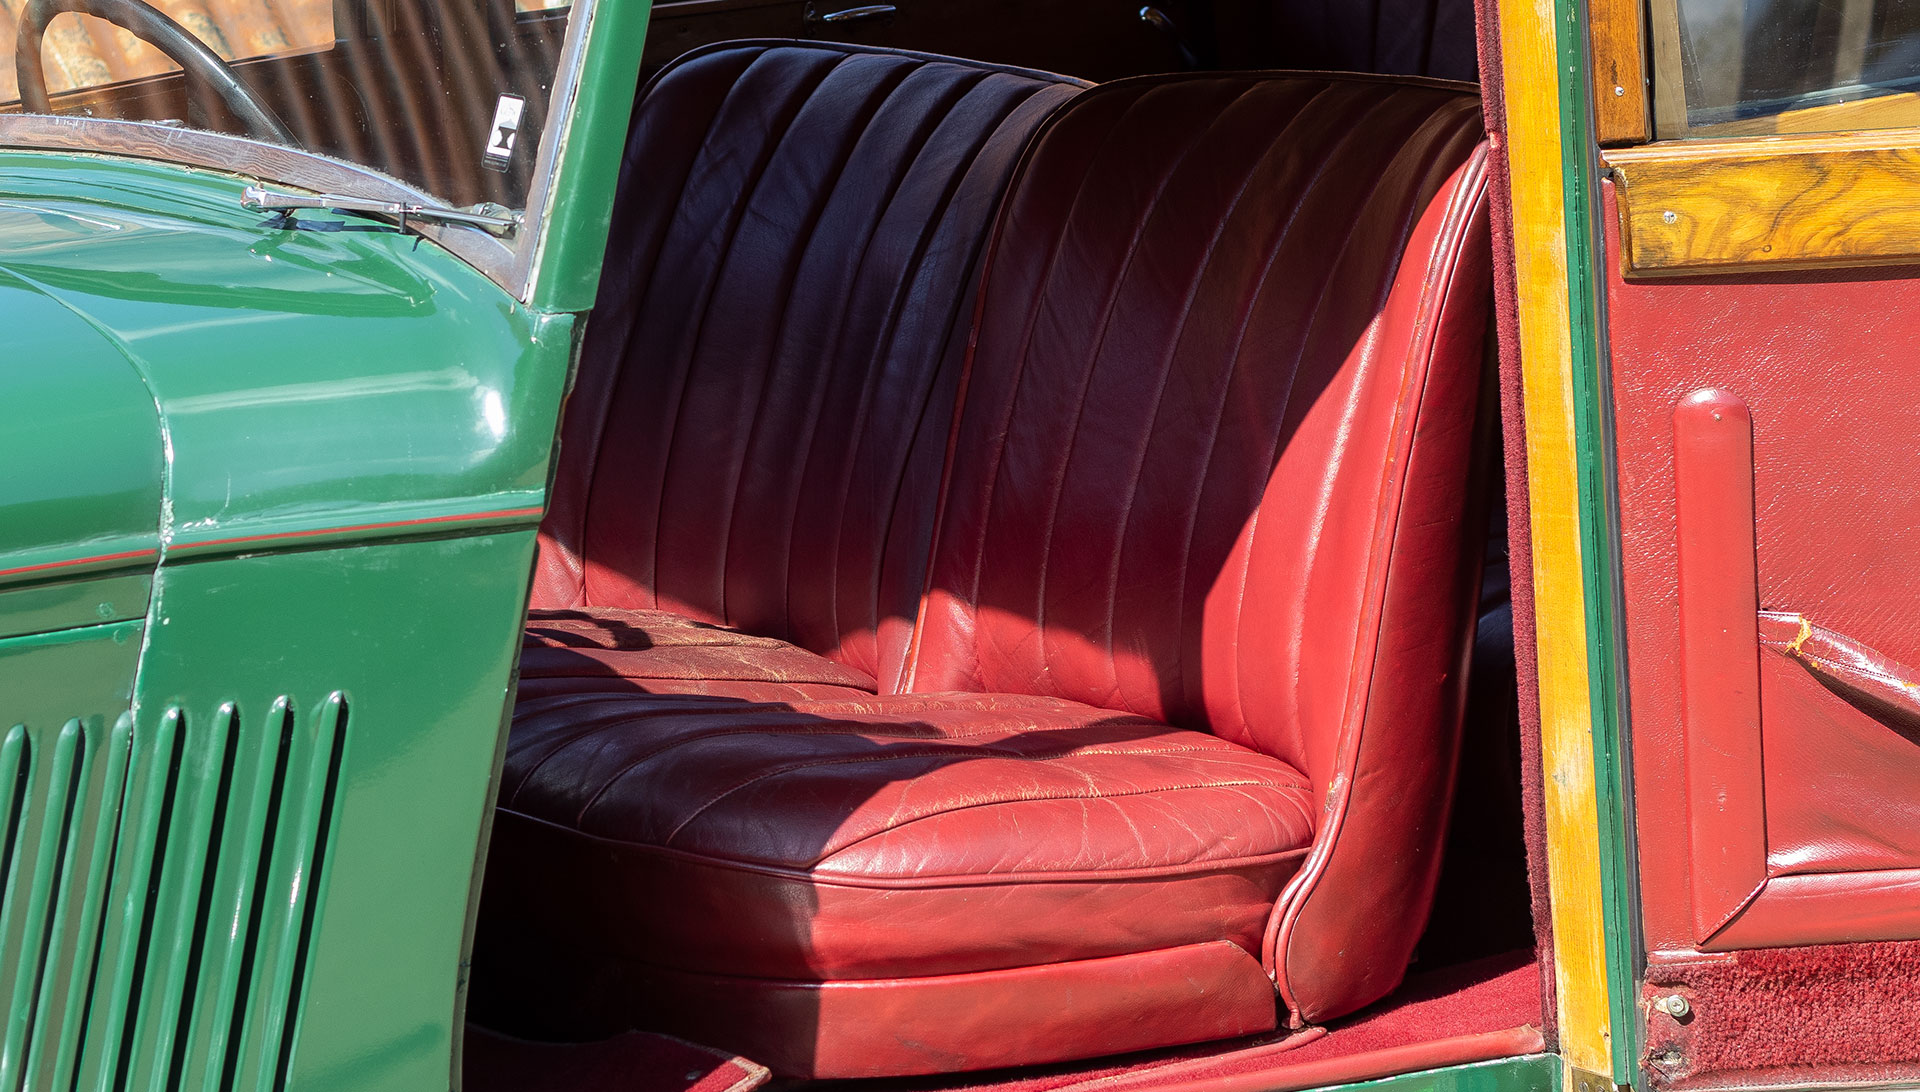 1937 Bentley 4¼ Litre Shooting Brake 'Woodie' for sale at The Classic Motor Hub